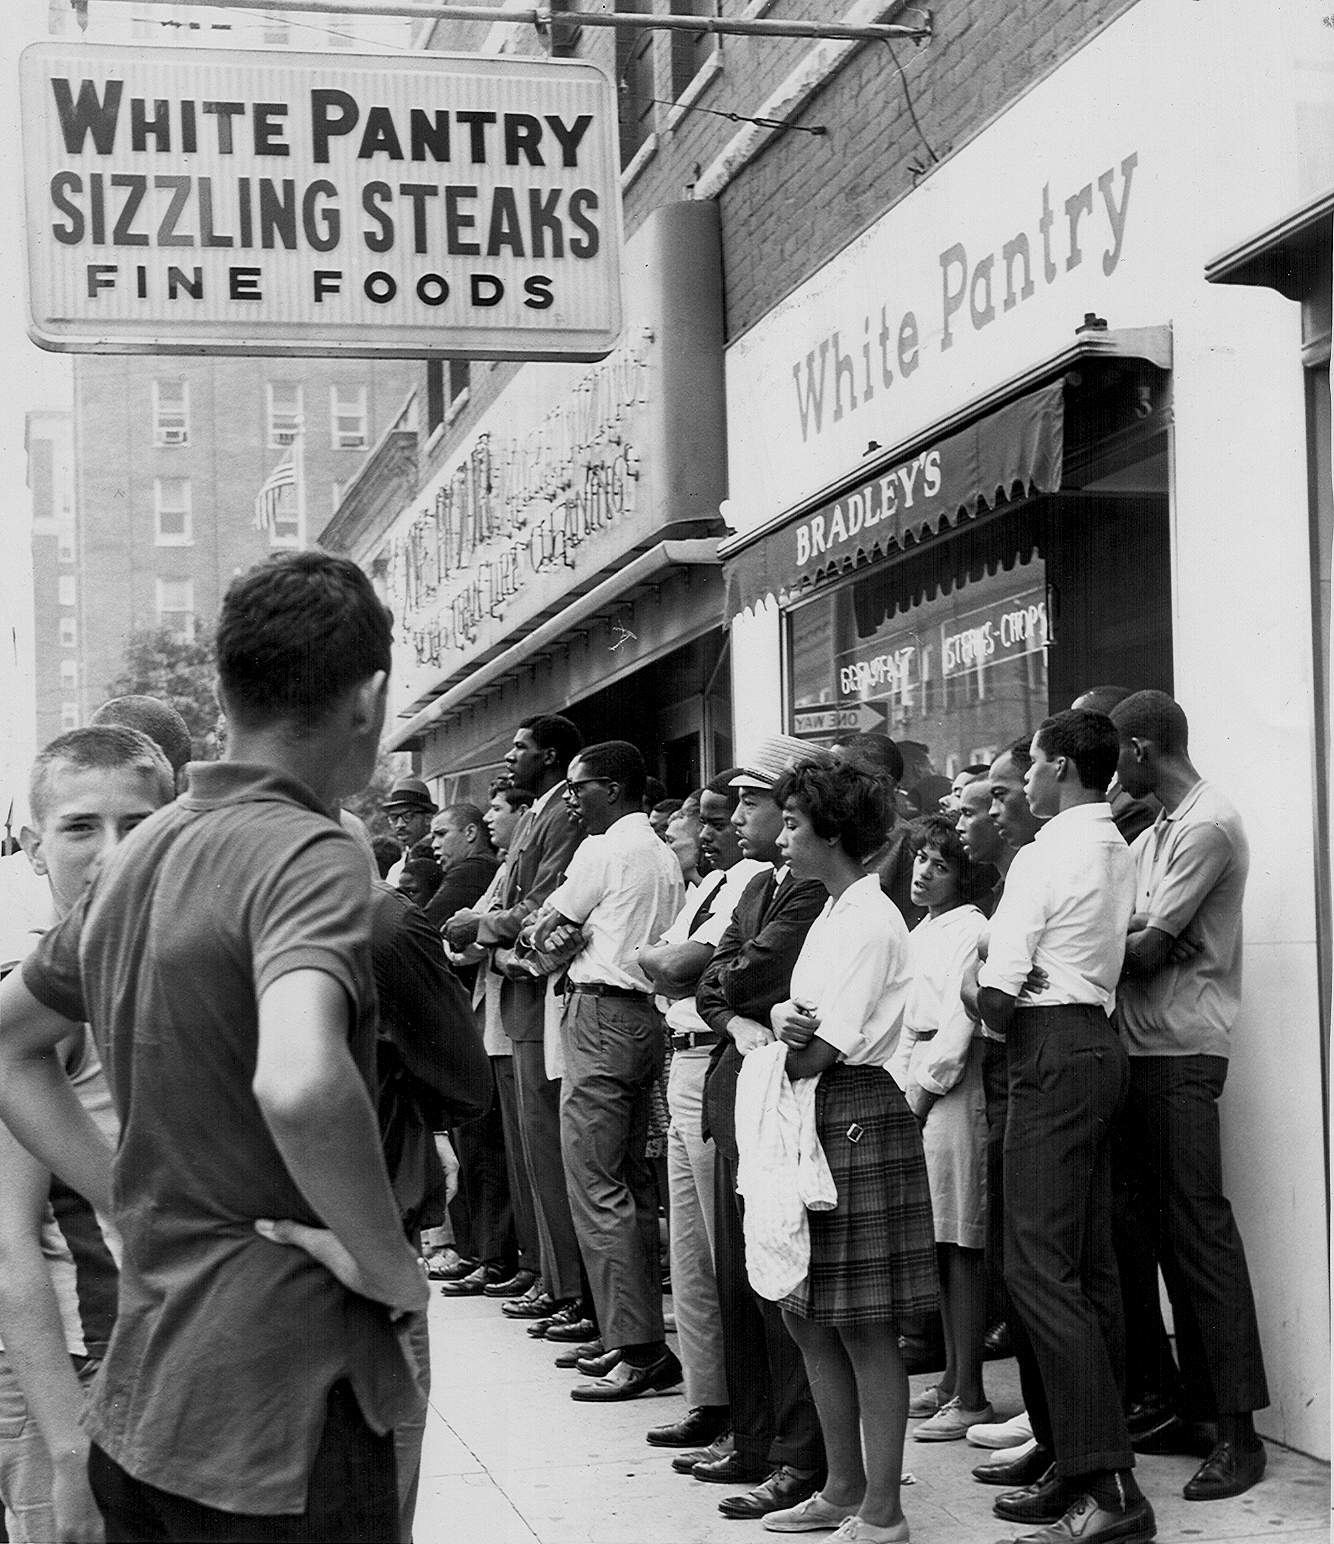 Marshall students and other members of the Civic Interest Progressives held several protests in front of the White Pantry.